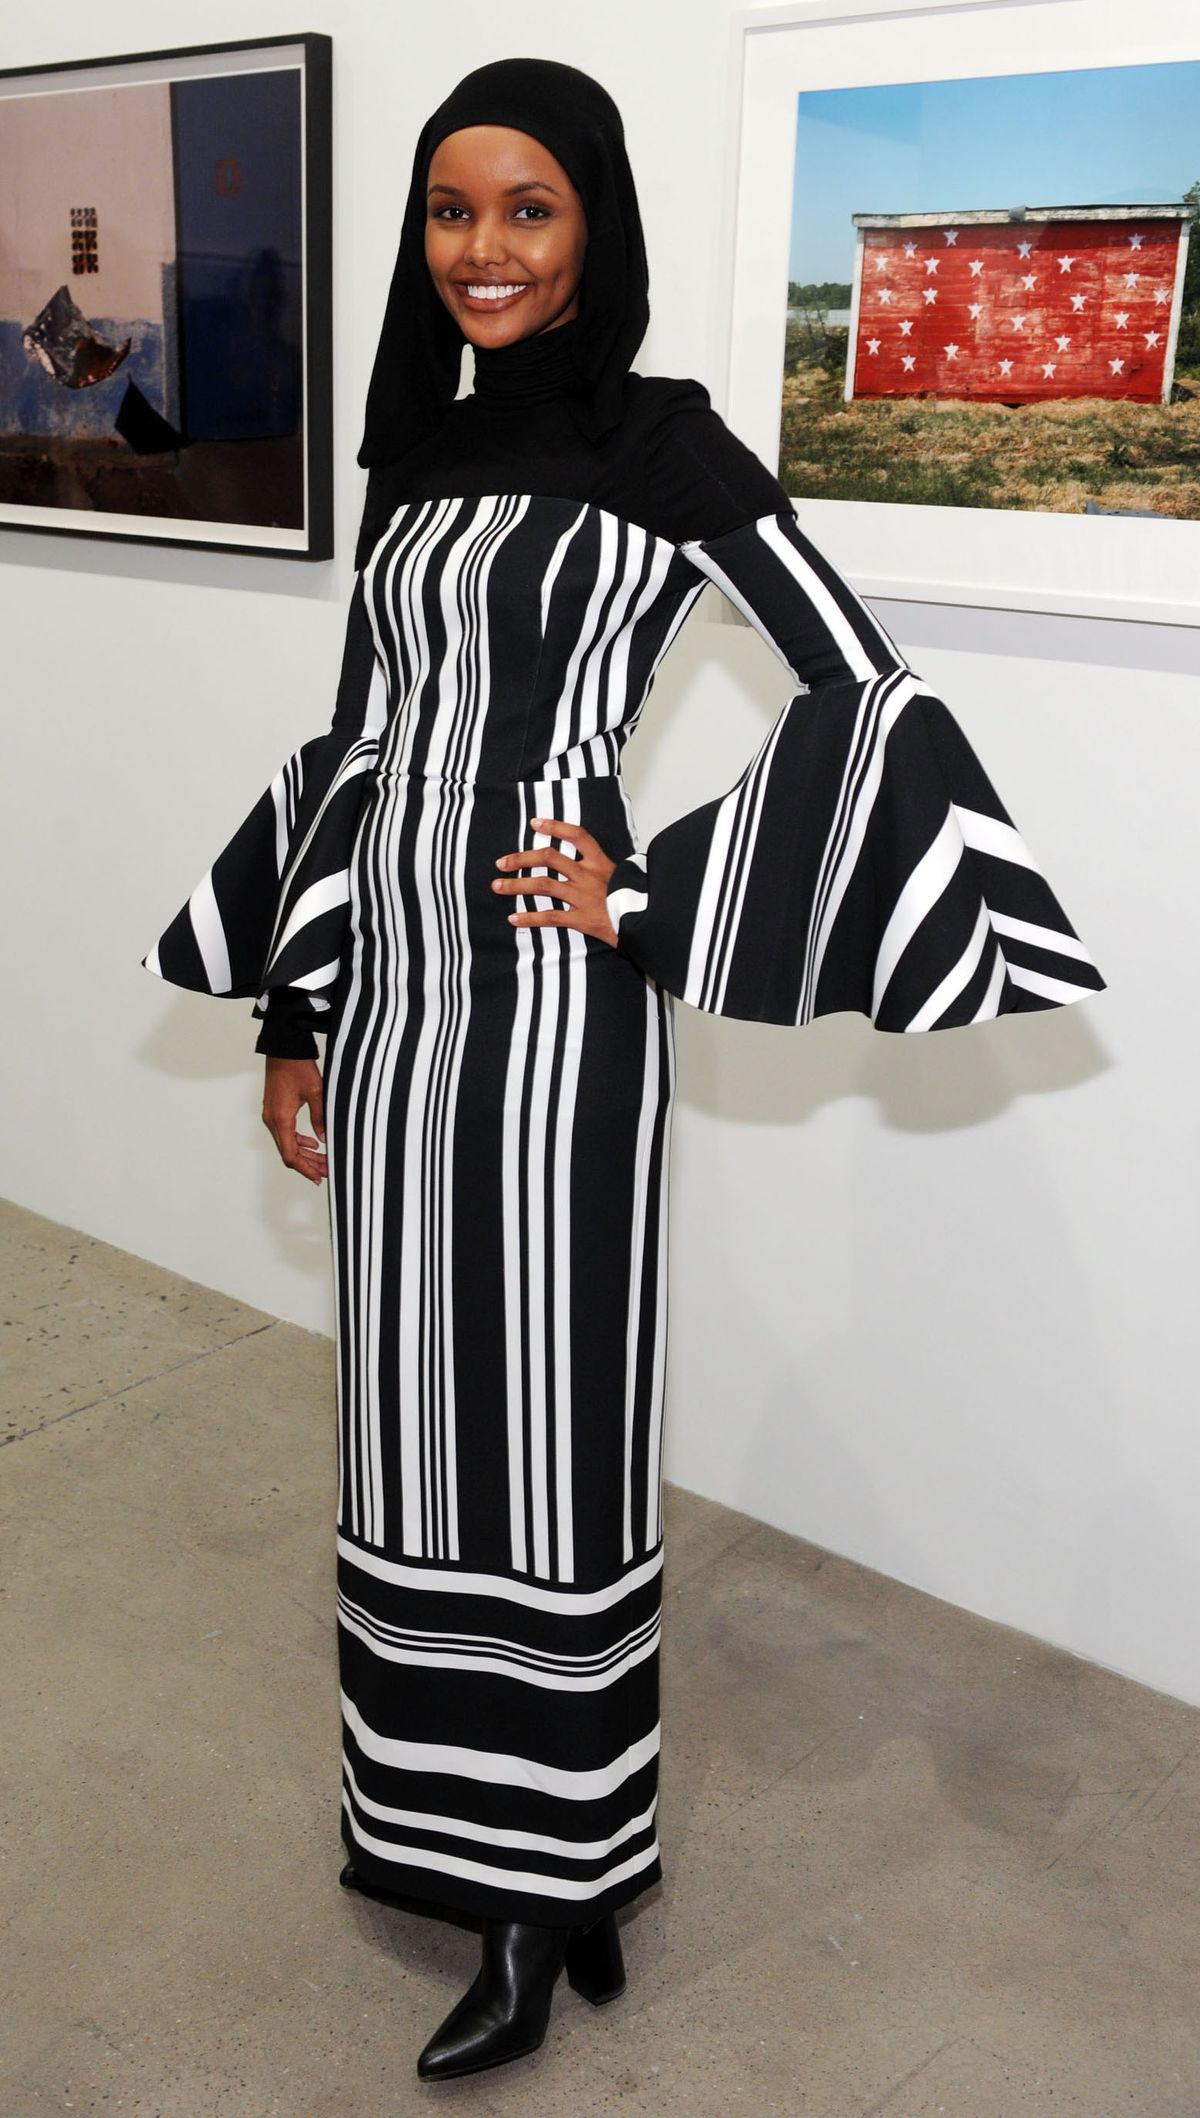 Halima Aden attends Art + Commerce: The Exhibition opening at Skylight Modern on September 8, 2017 in New York City.